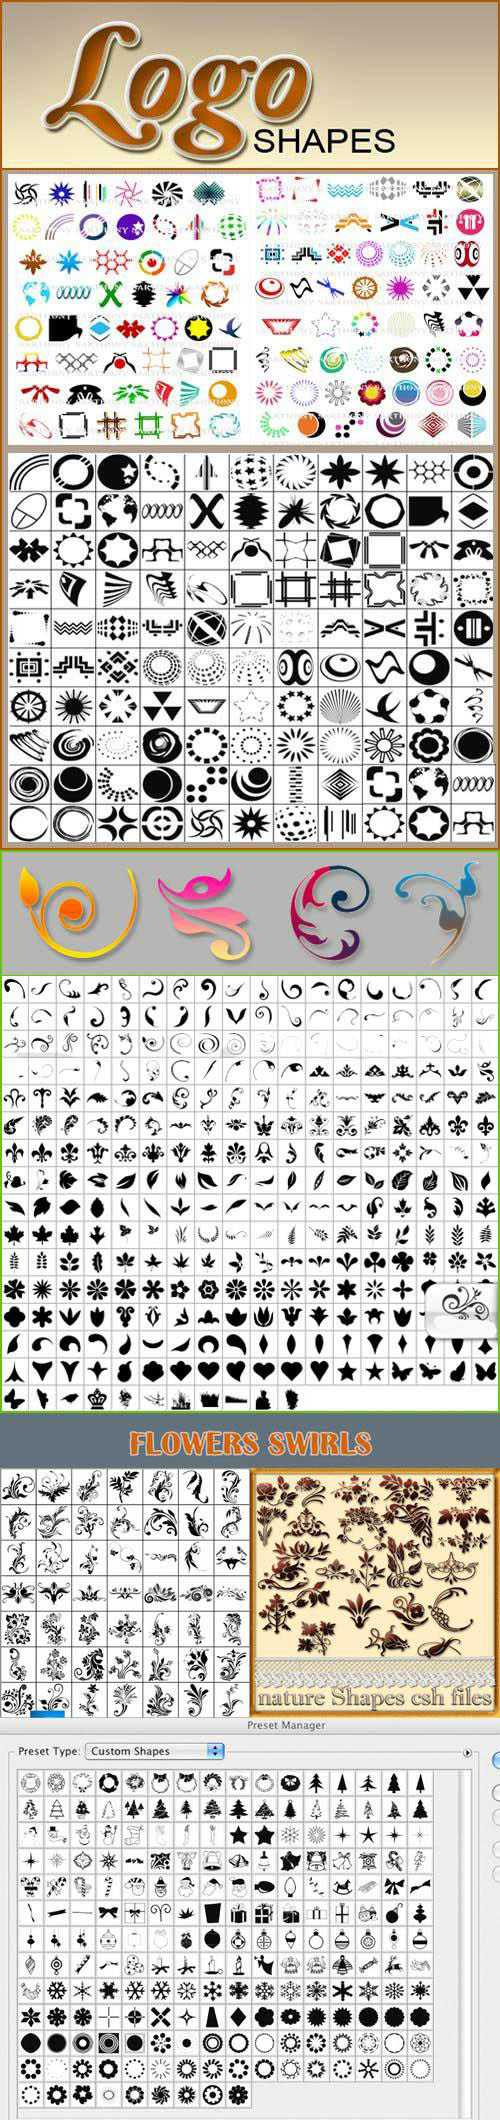 500+ Photoshop Shapes Collections